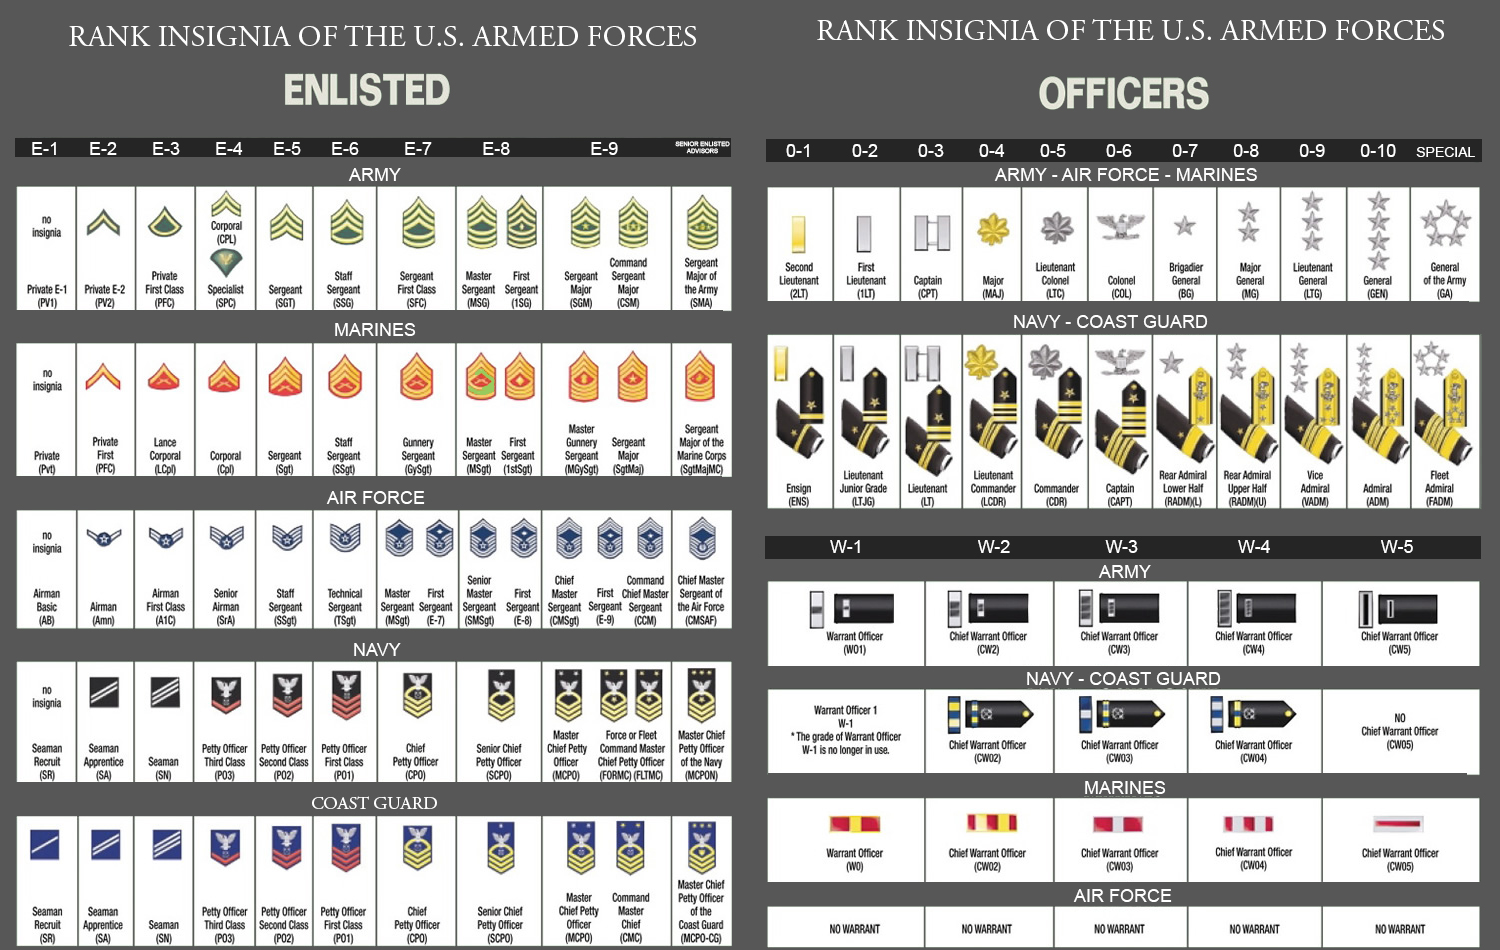 military rank chart army - Google Search